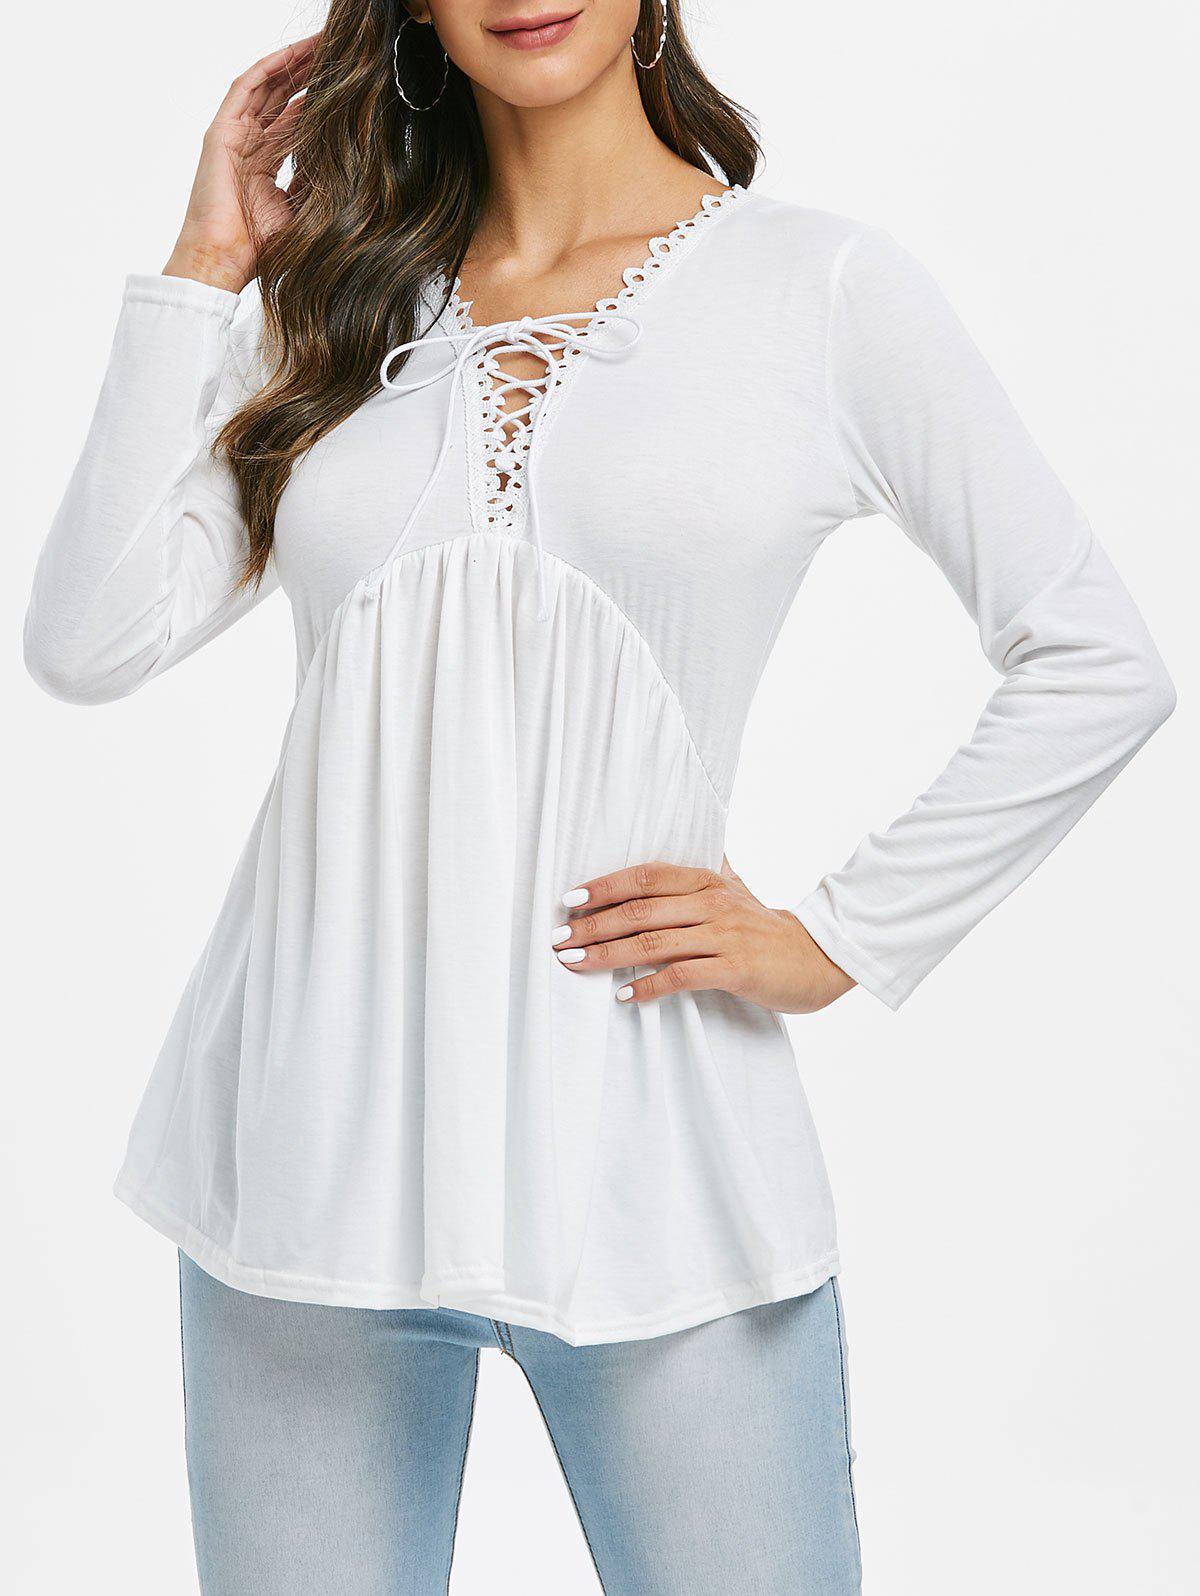 Lace Trim Lace-up Smock Top - WHITE S